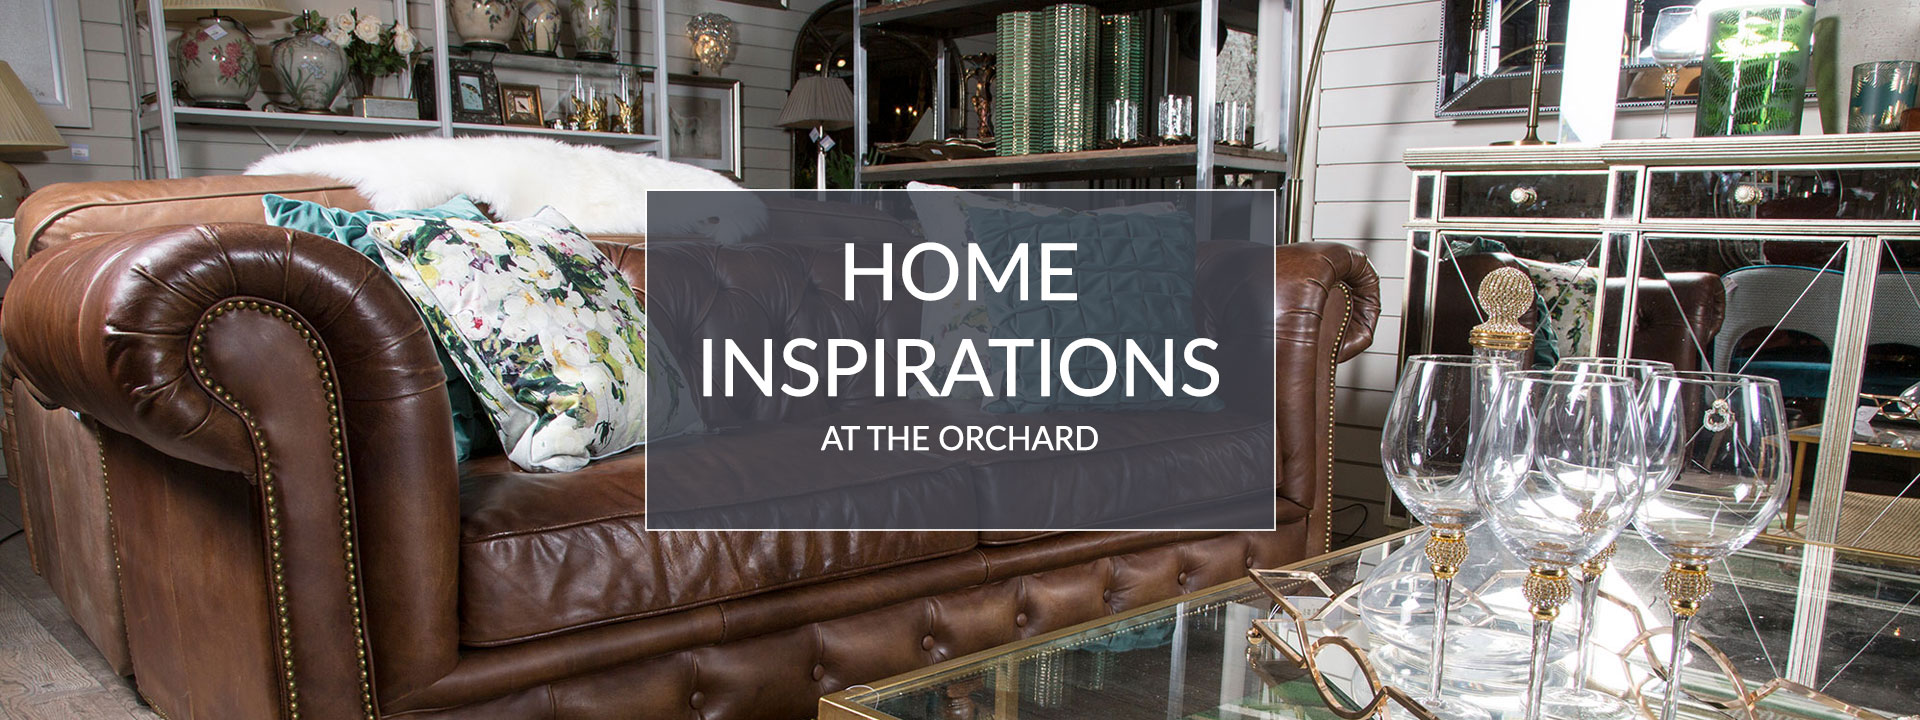 Home Inspirations by Neptune, Flamant & Halo